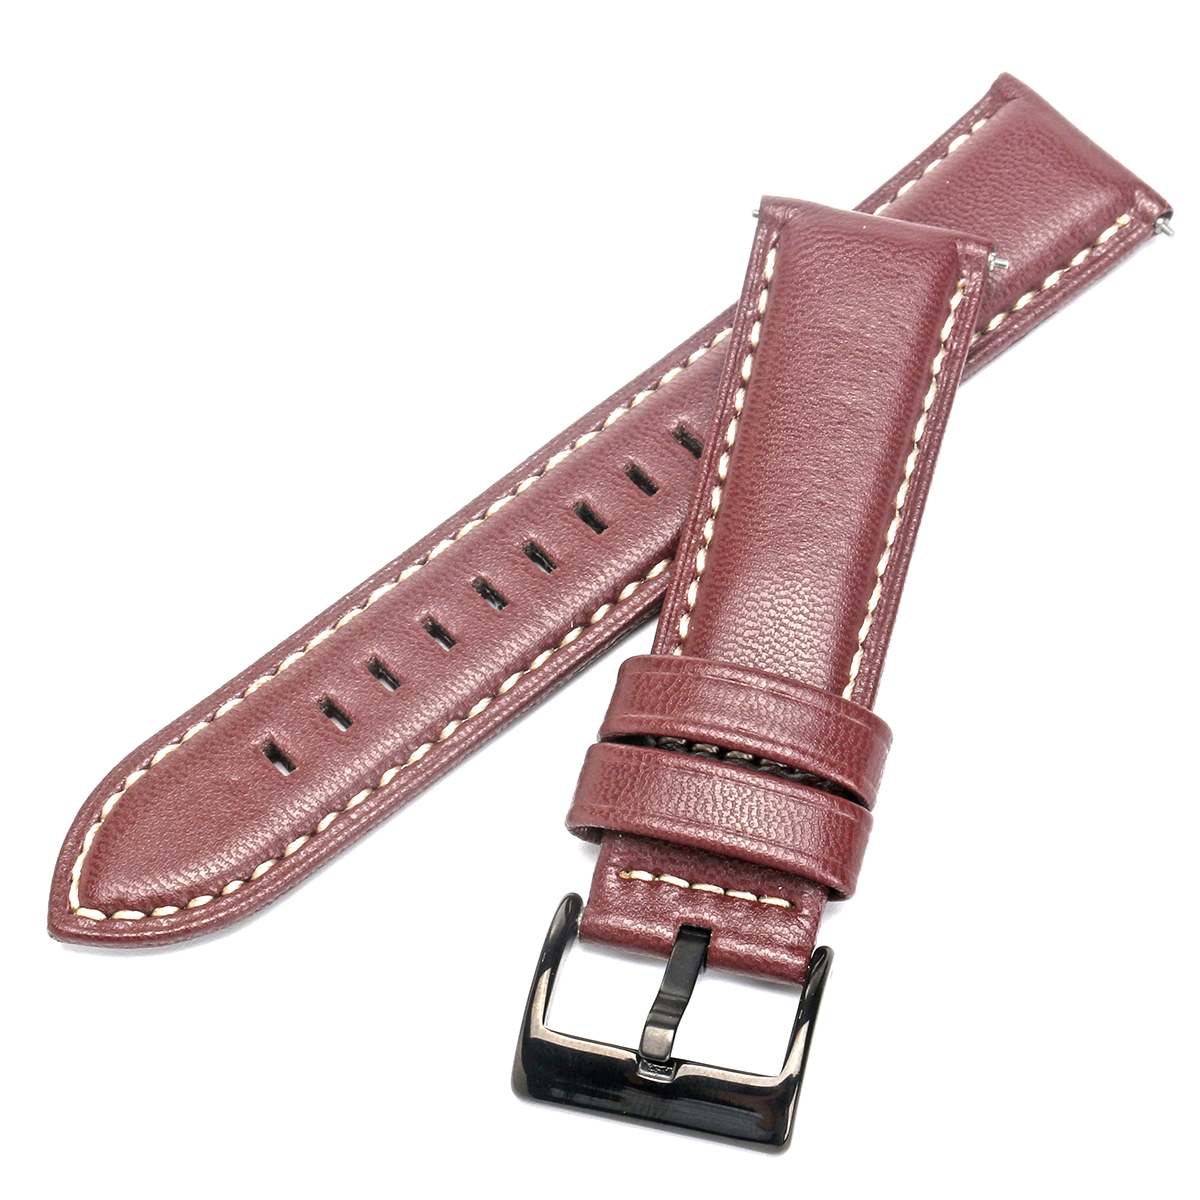 Replacement 22mm Watch Band Wrist Strap for Fossil Q Founder Gen 1/2